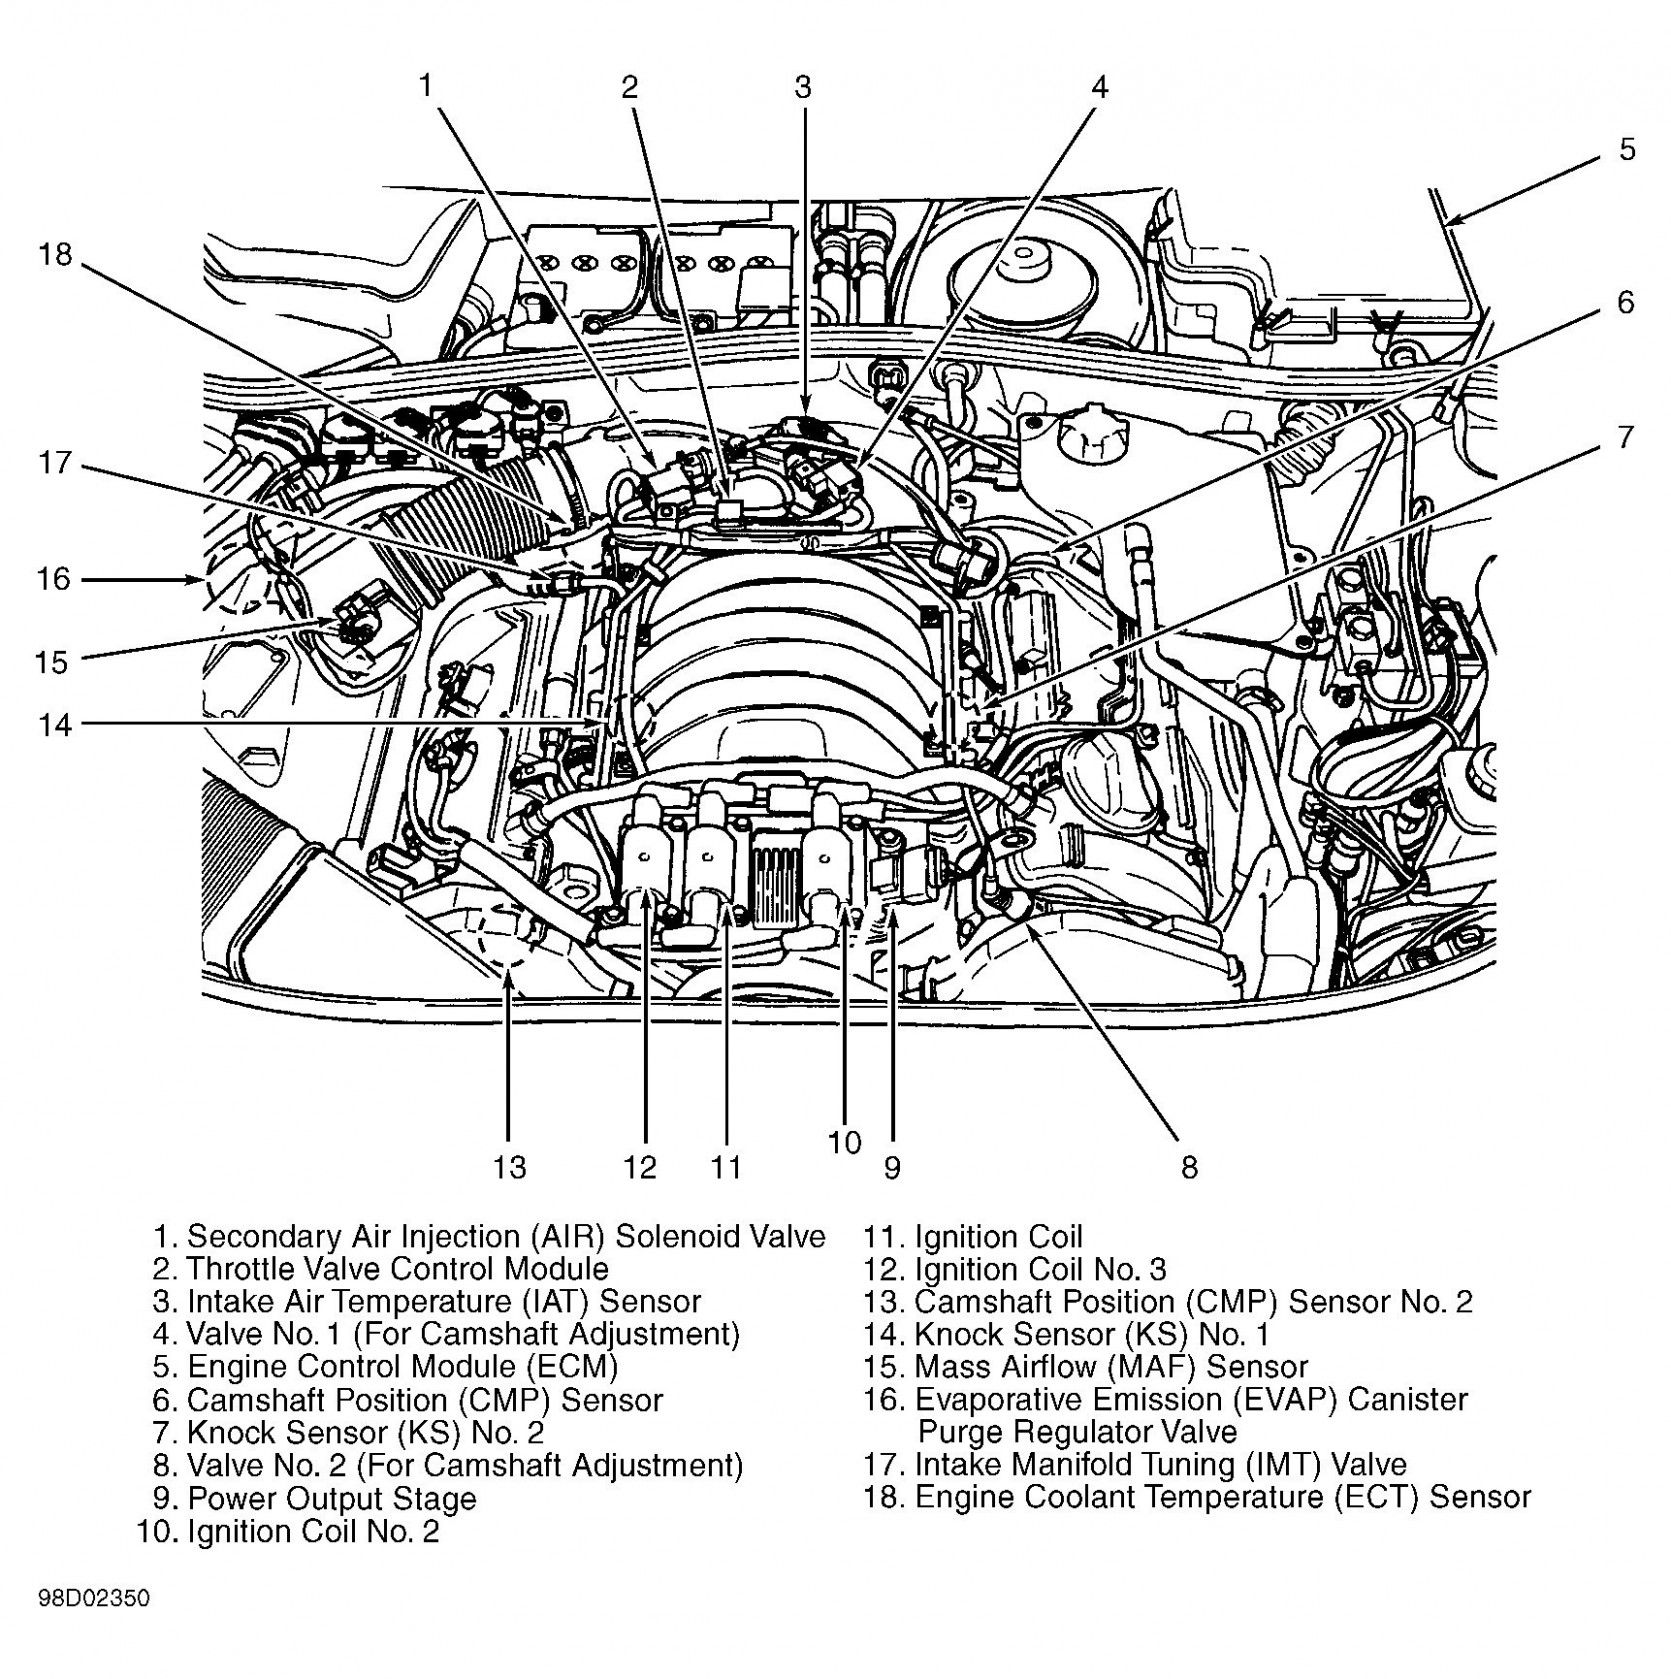 audi a8 engine diagram - fusebox and wiring diagram symbol-abbey -  symbol-abbey.menomascus.it  symbol-abbey.menomascus.it